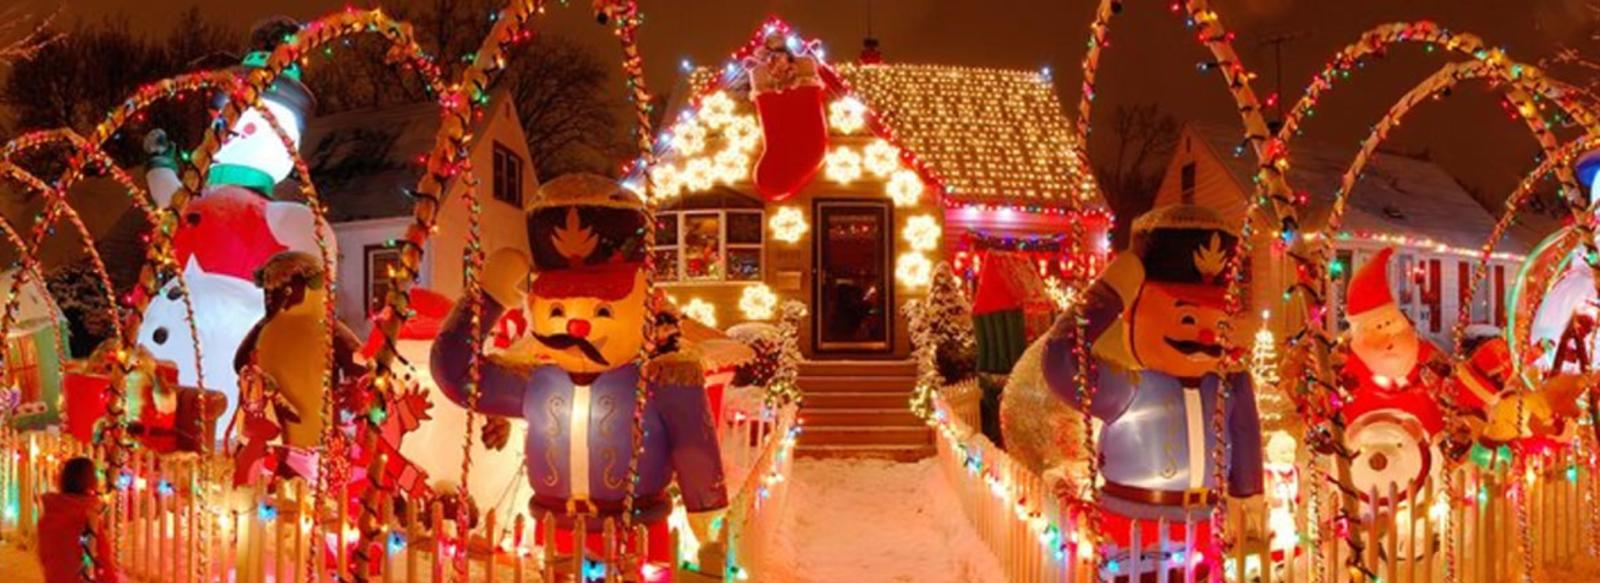 Peteyville-Christmas-Decorations-Hammond-Indiana